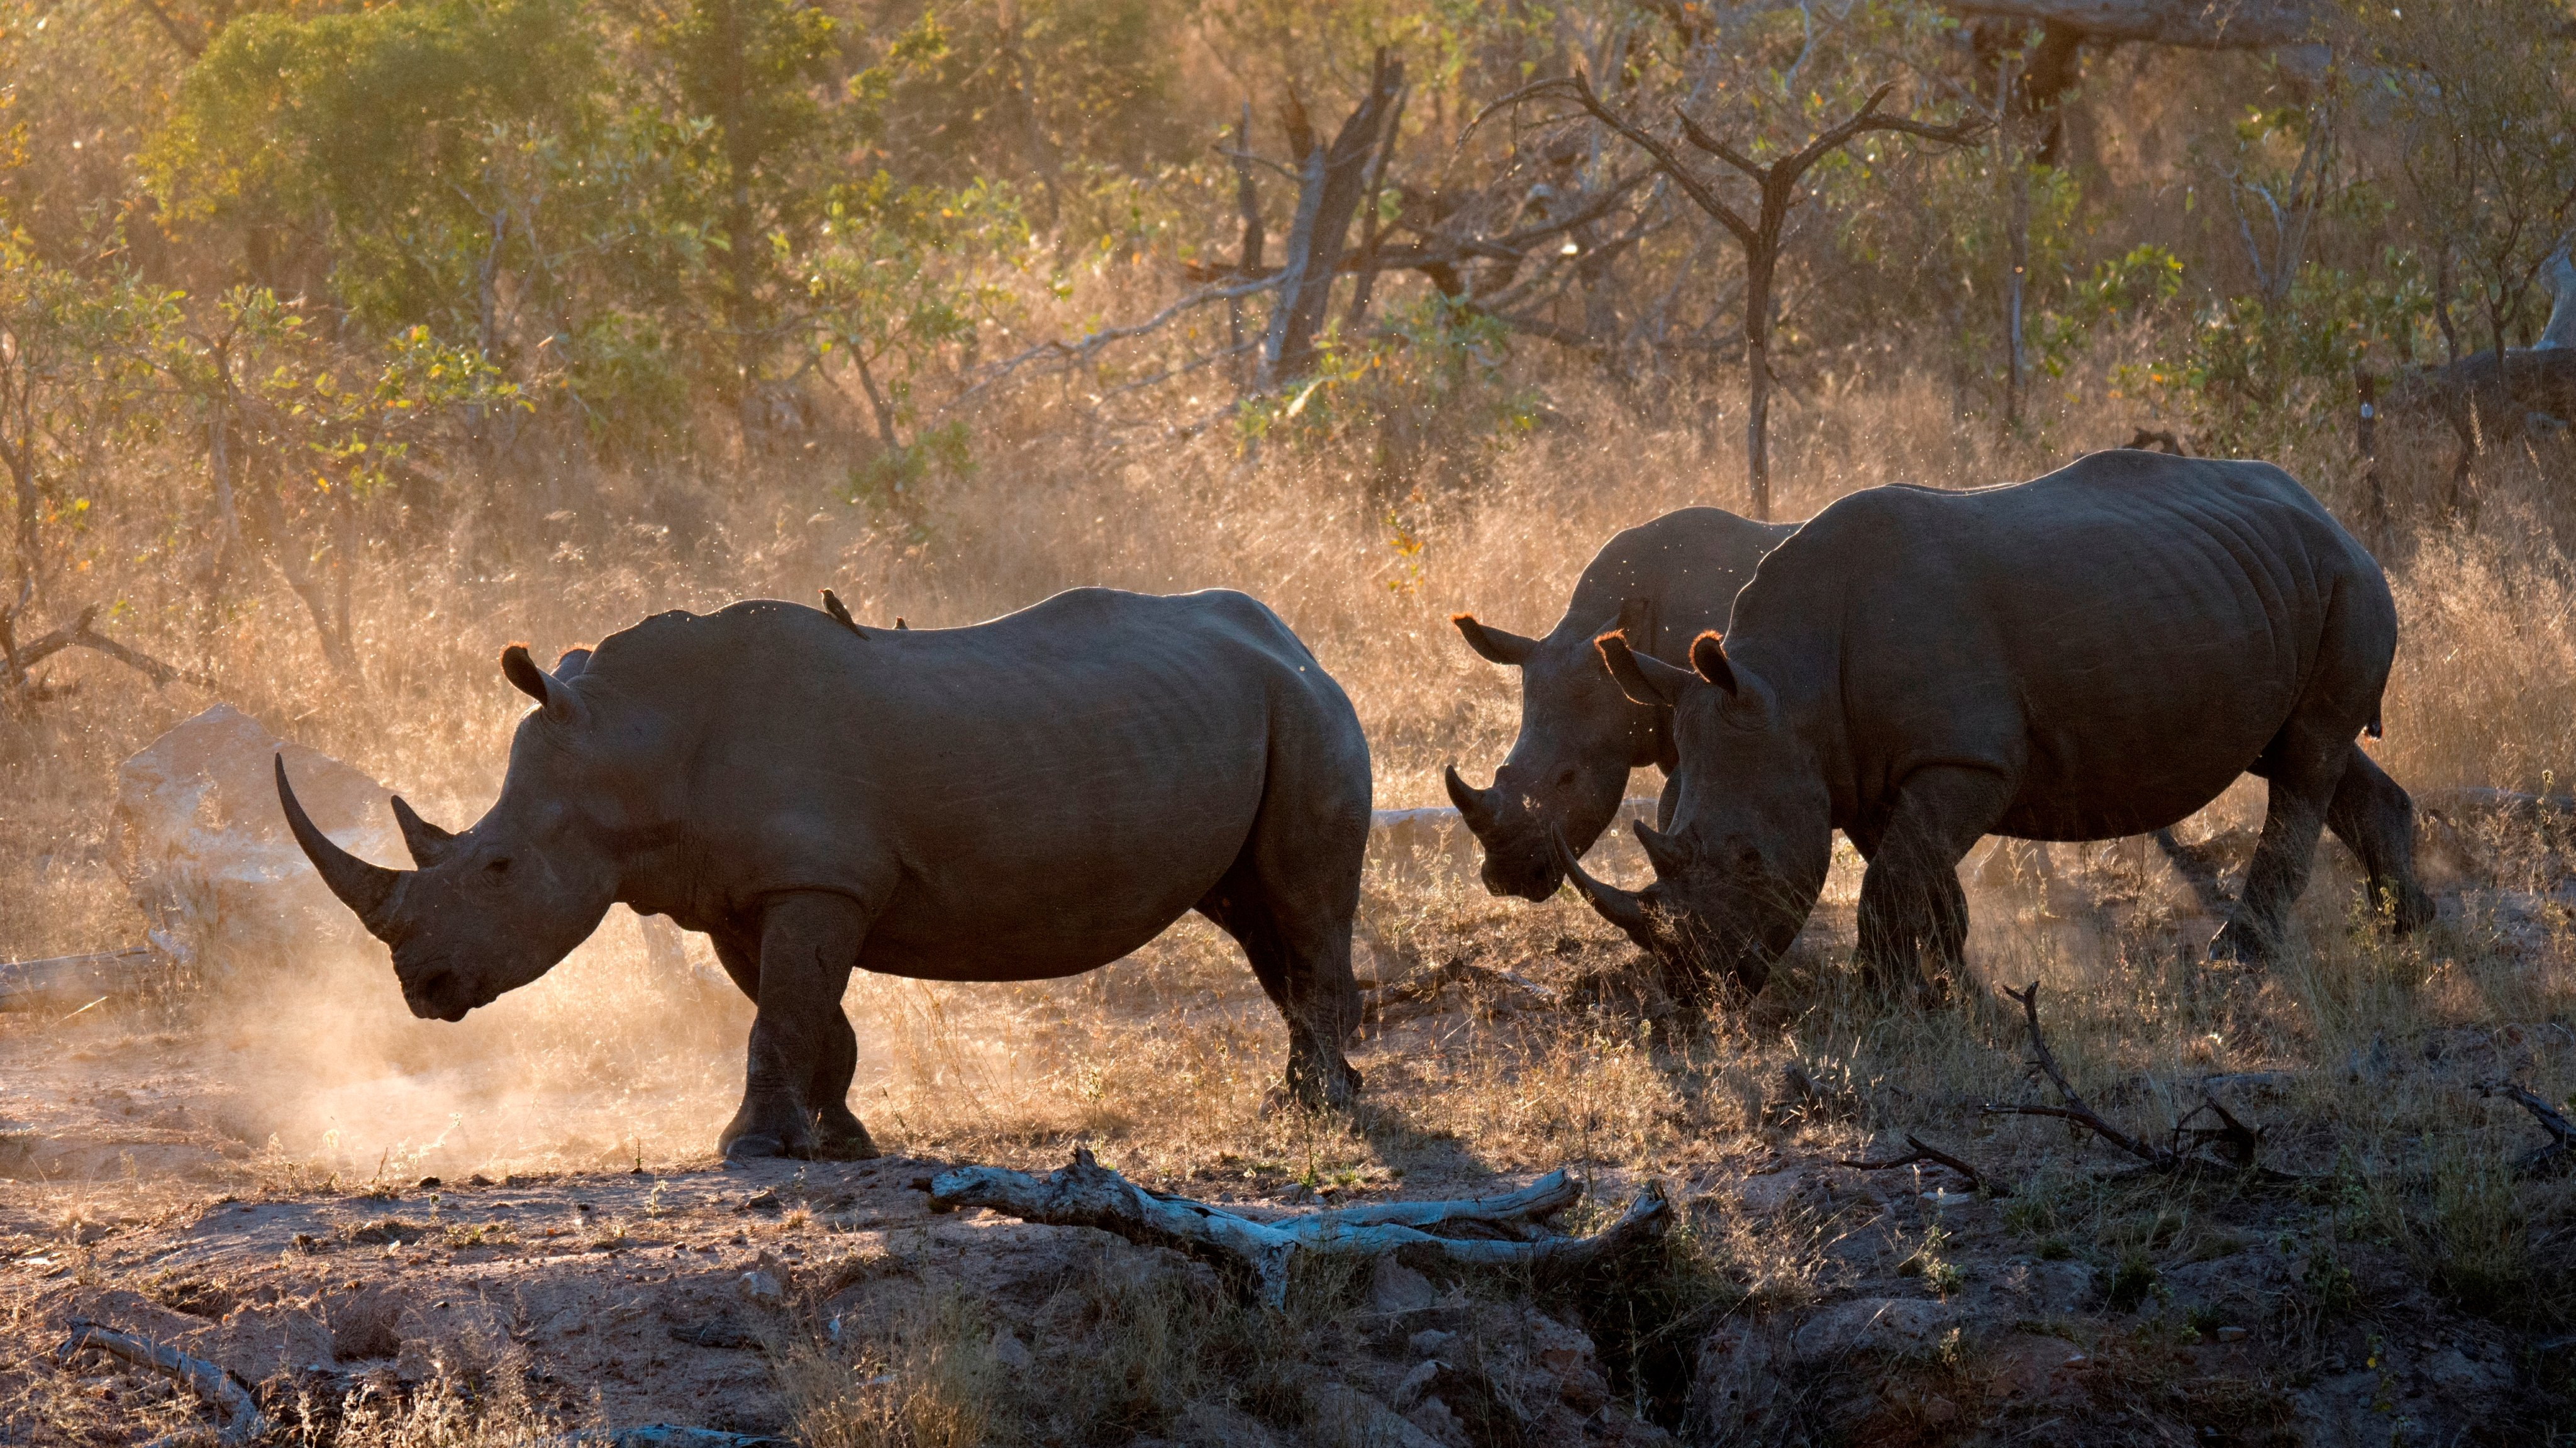 Family of southern white rhinoceros. Ceratotherium simum simum. a threatened species. walks around the savanna at the Kruger National Park. South Africa